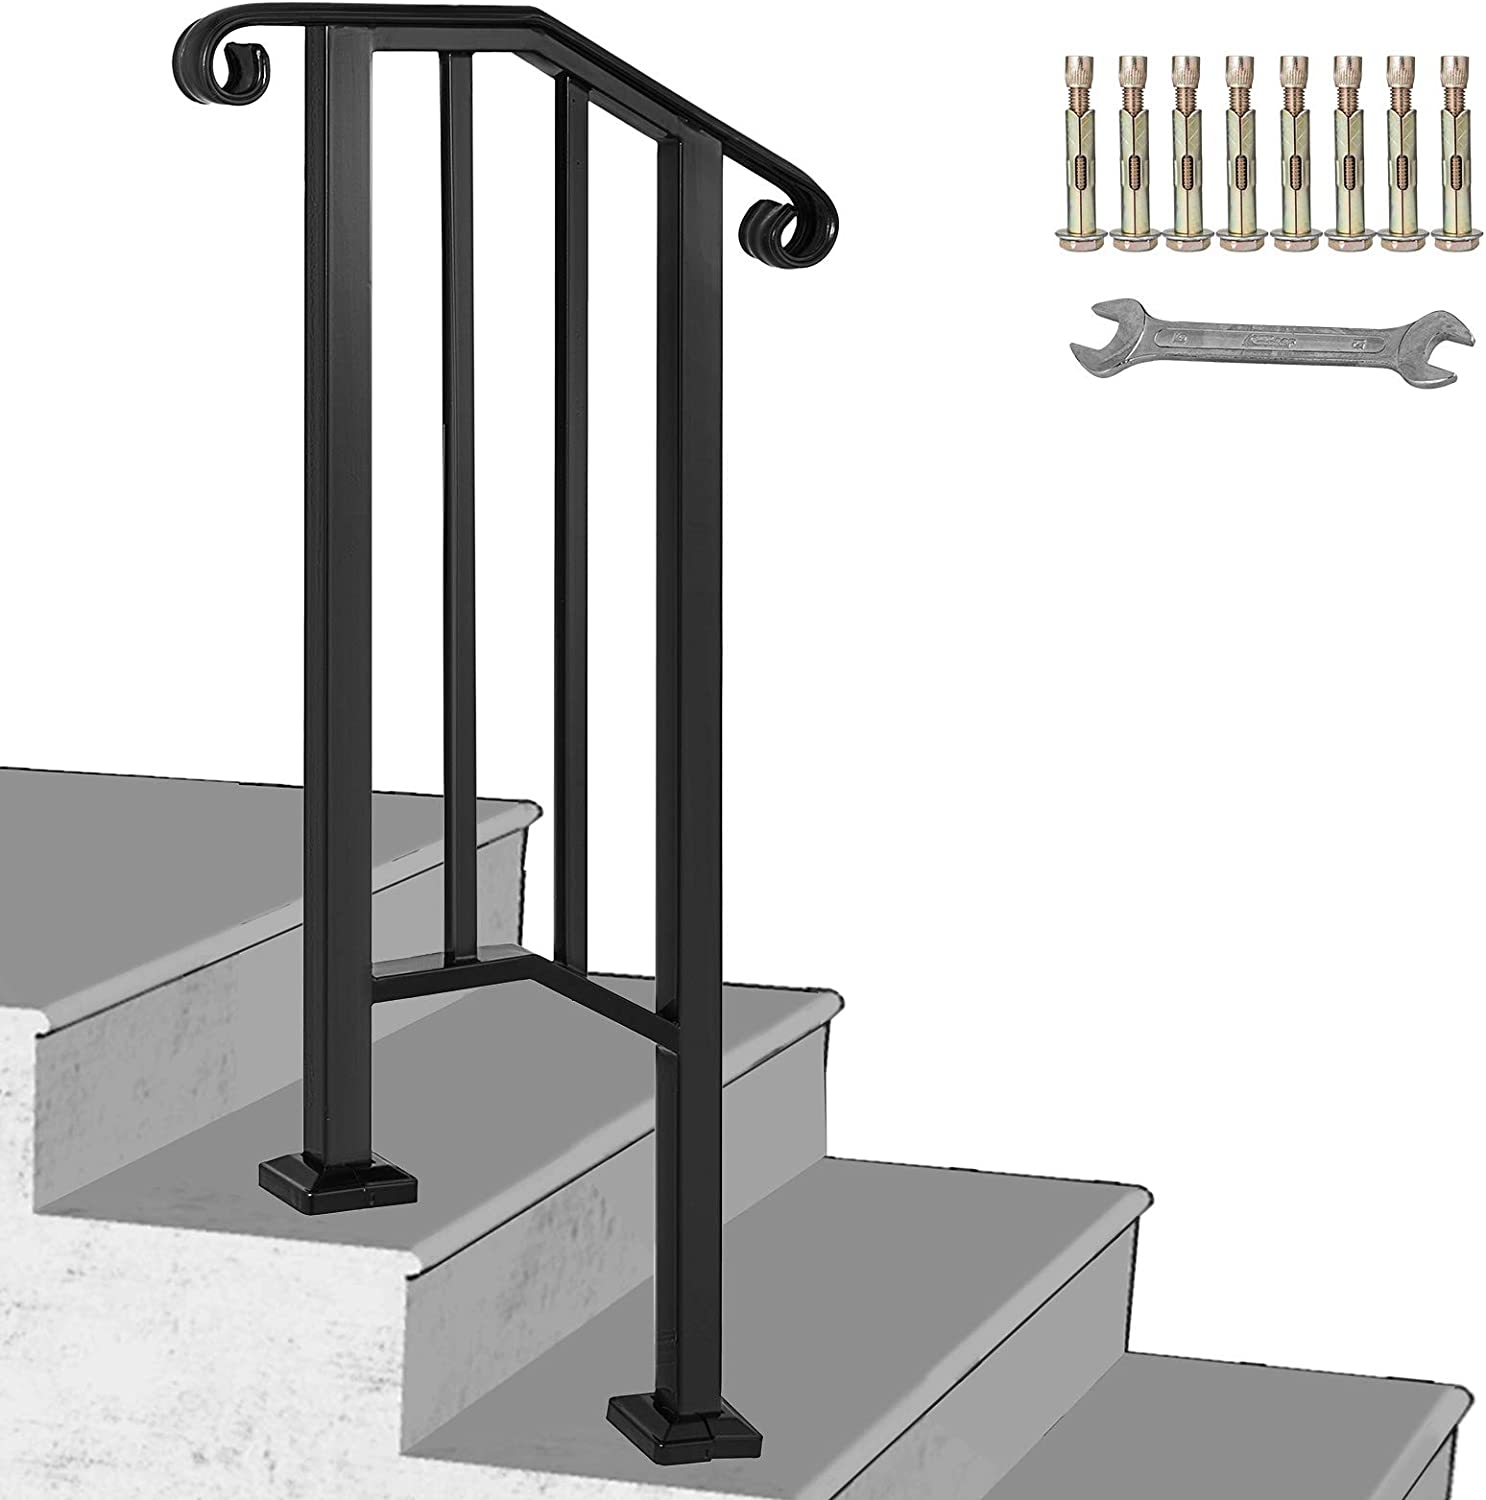 Happybuy Handrail Picket 1 Fits 1 Or 2 Steps Matte Black Stair | Outdoor Stair Railing Installation | Balcony | Steel | Metal | Patio | Residential